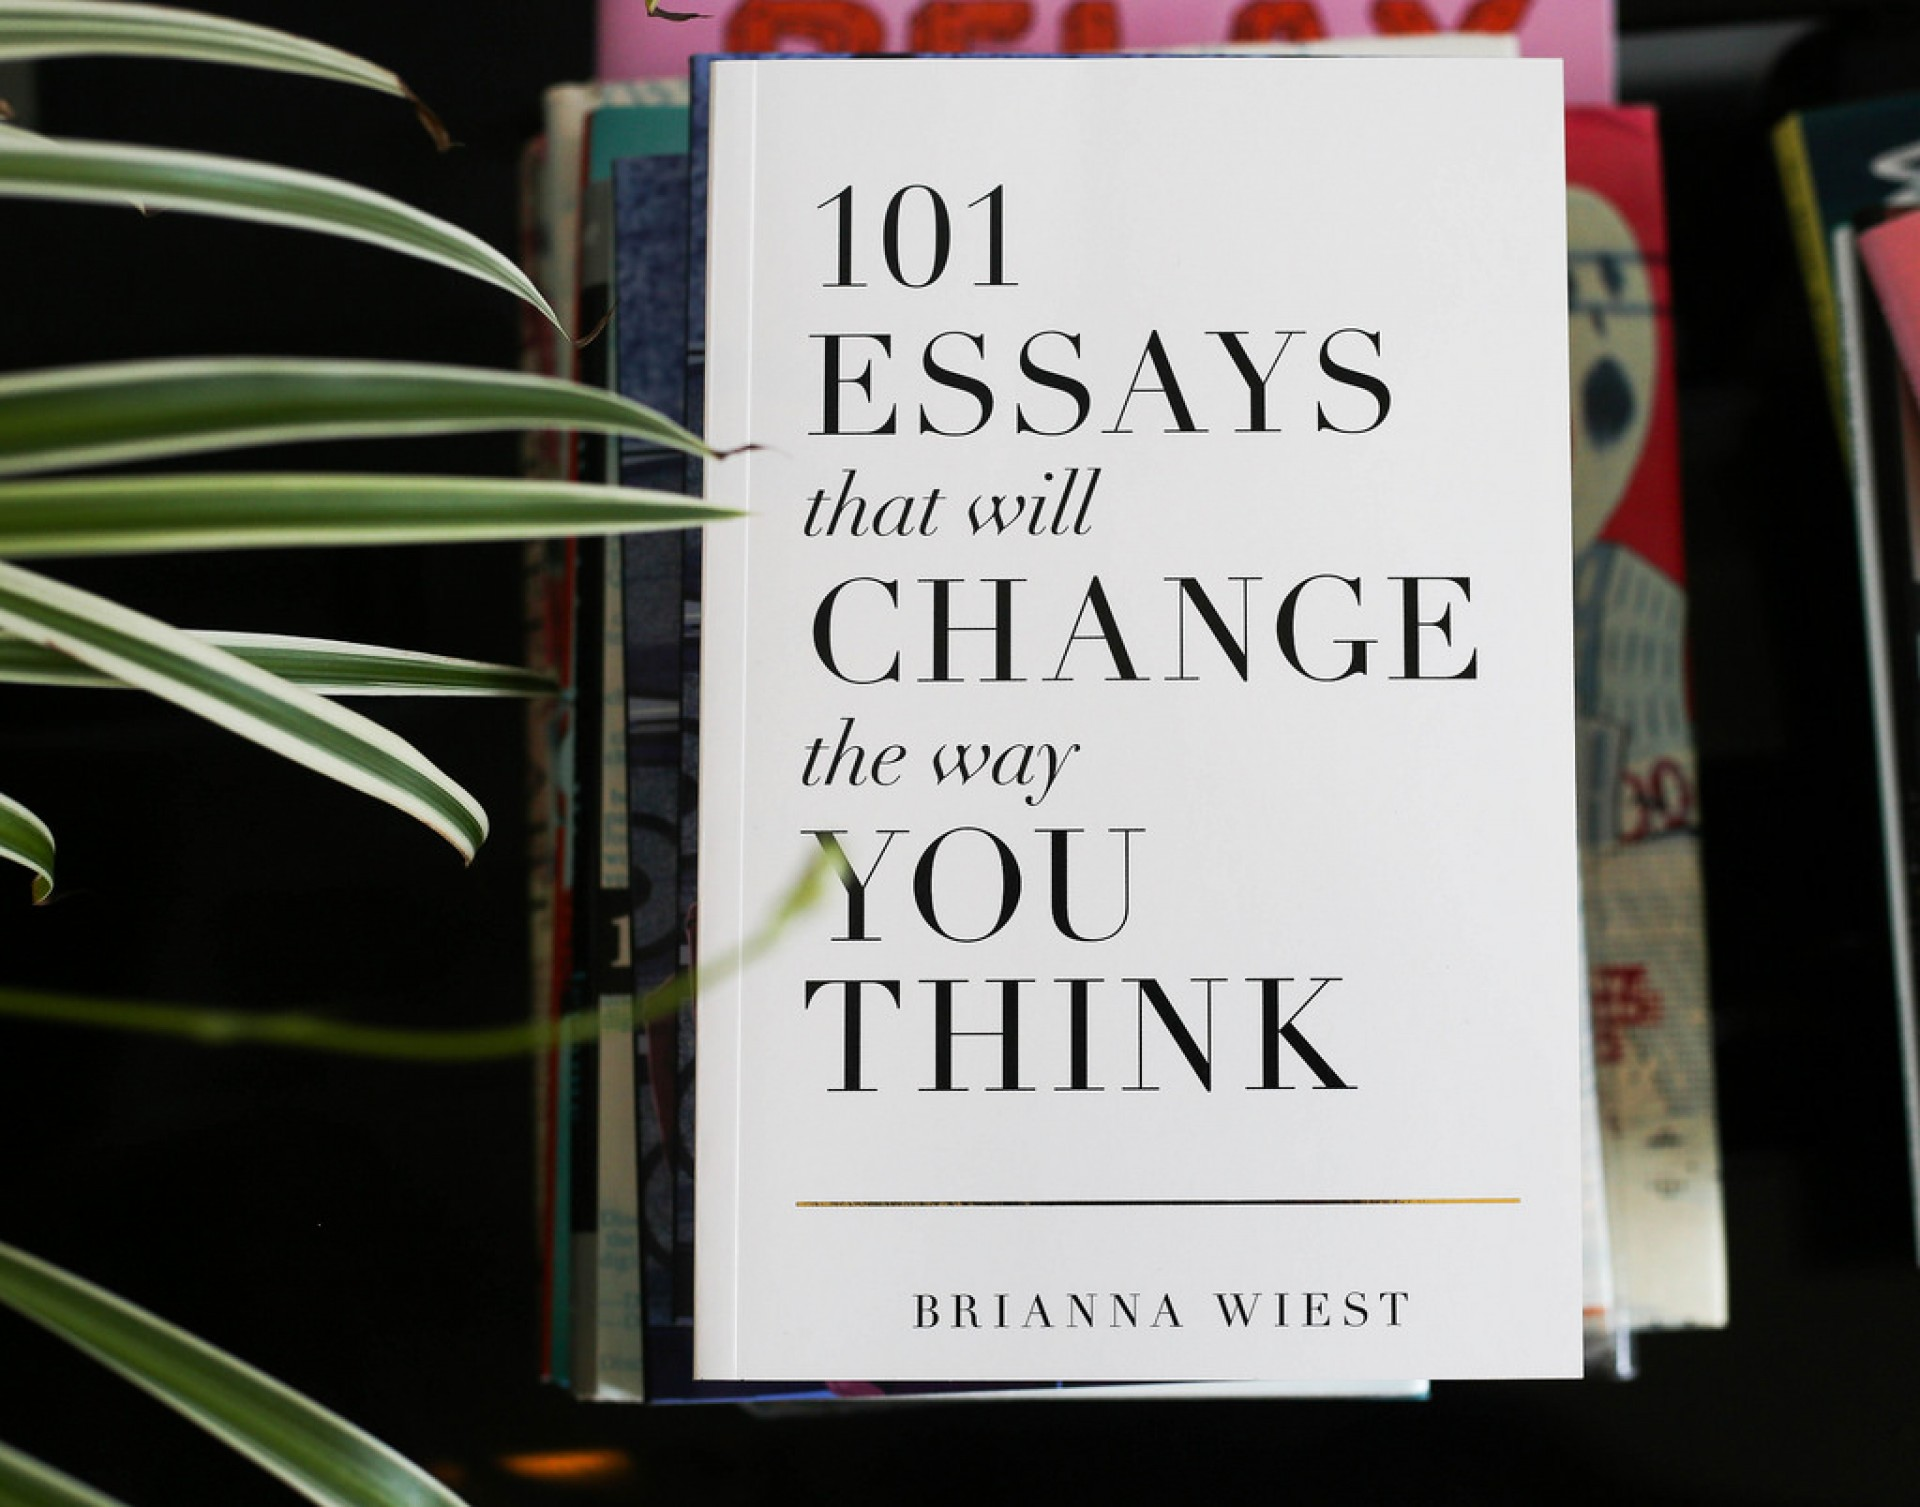 018 Essay Example Essays That Will Change The Way You Think 34458631120 86ea922725 B Unusual 101 Book Depository Barnes And Noble Review 1920